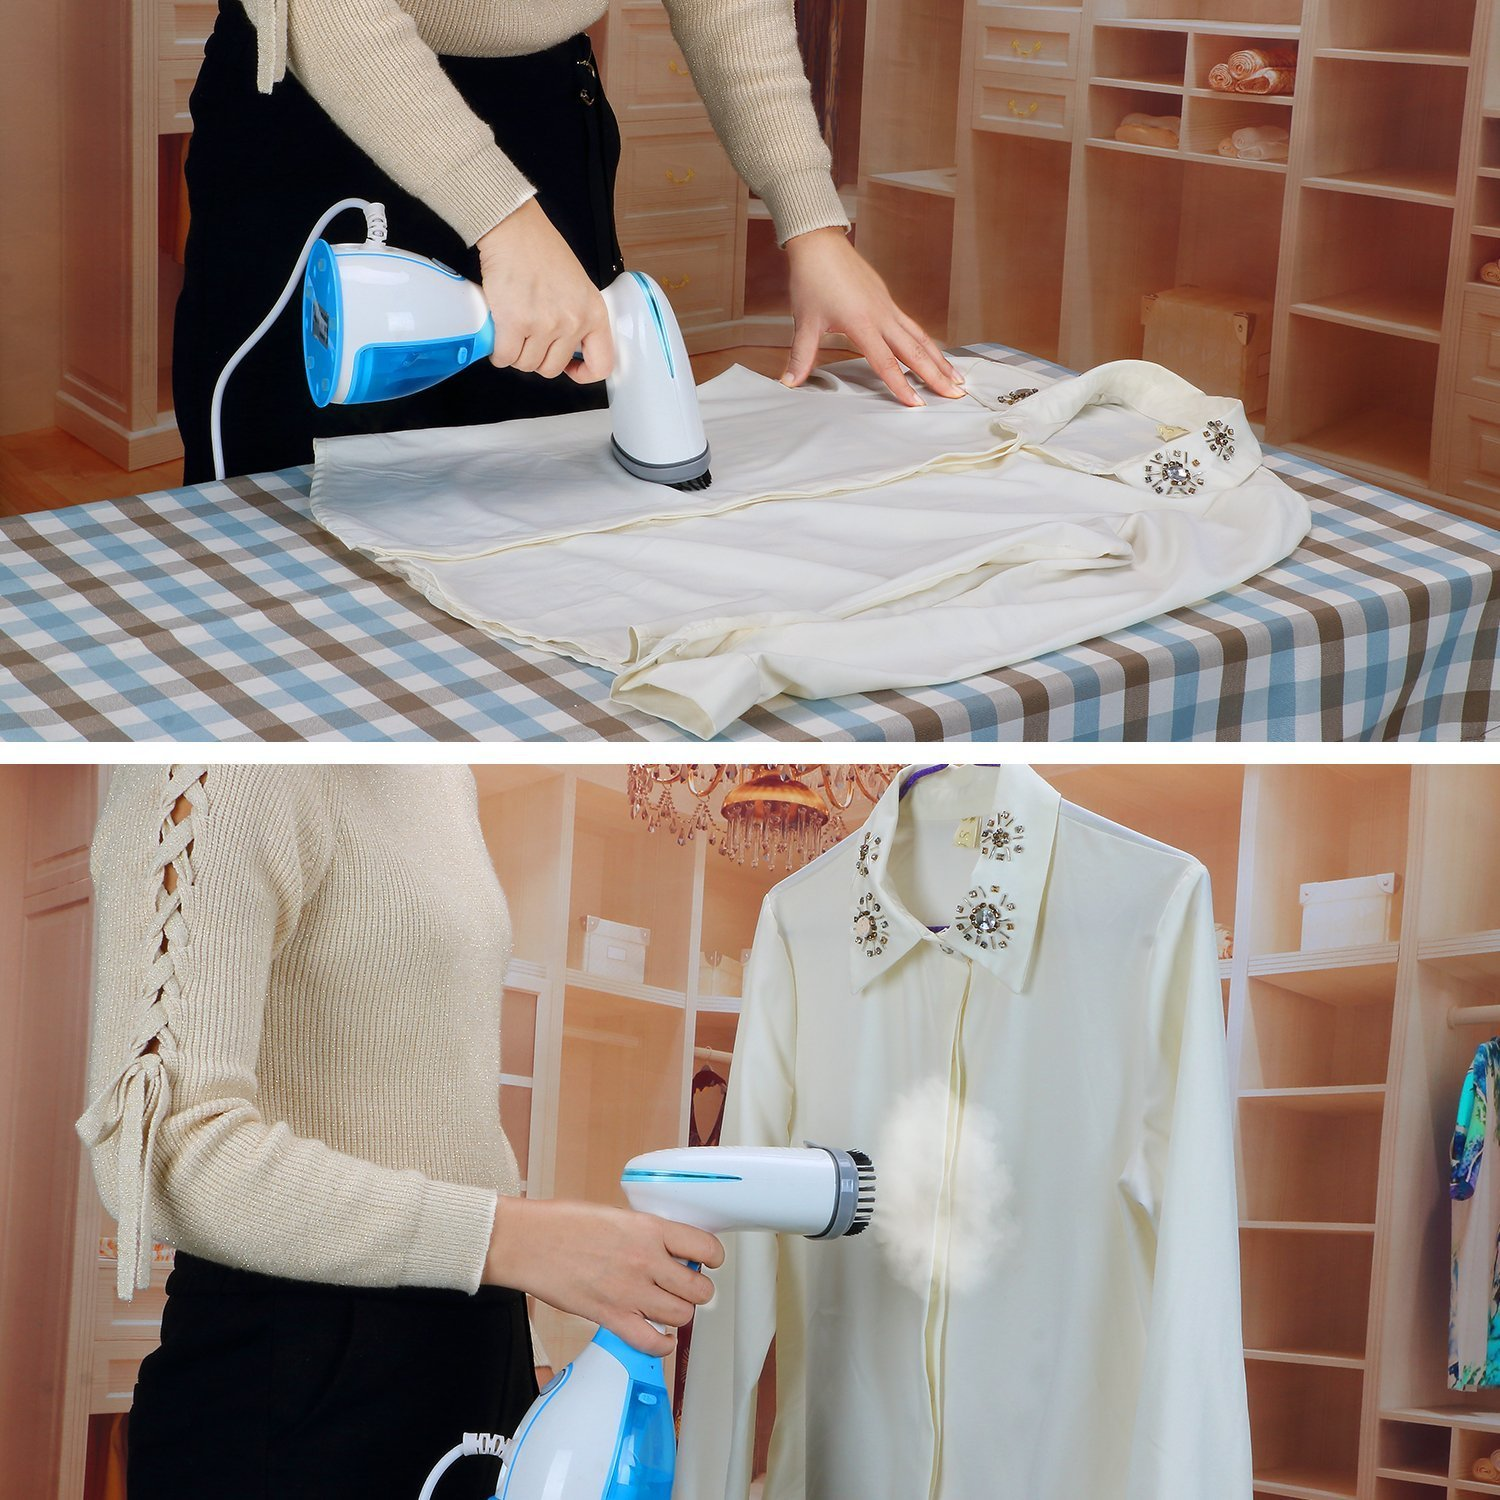 Wishesport Garment Steamer Handheld Fabric Steamer, 15 Seconds Fast Steaming 280ml Removable Water Tank Vertical And Horizontal Steam Dual-Use Clothes Steamer For Home,Travel,Vacation